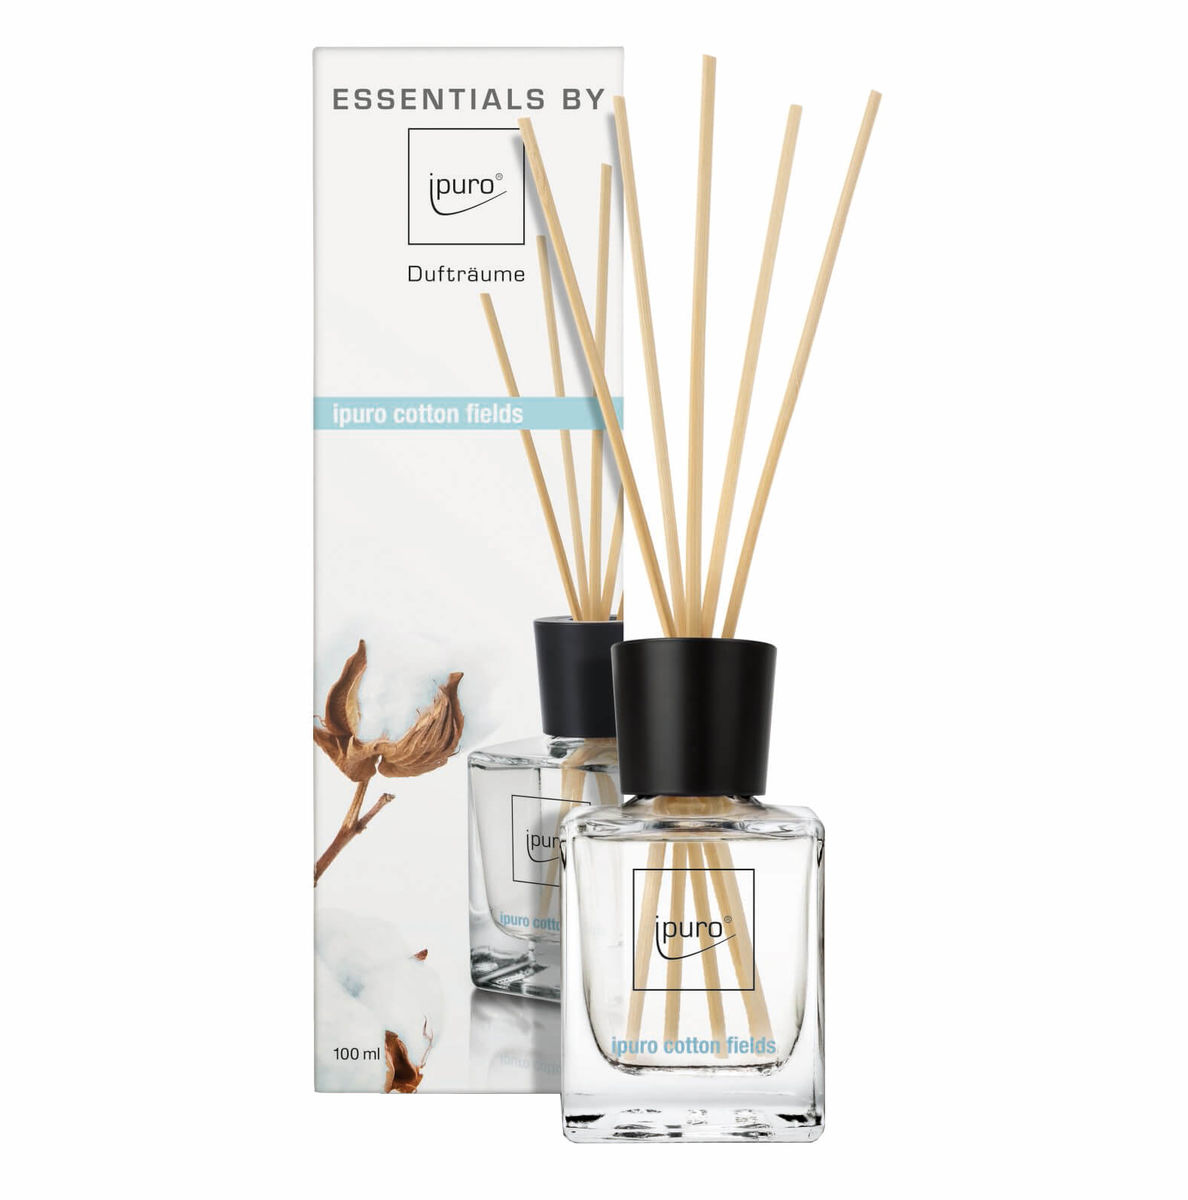 ESSENTIAL by ipuro cotton fields 100ml Lufterfrischer